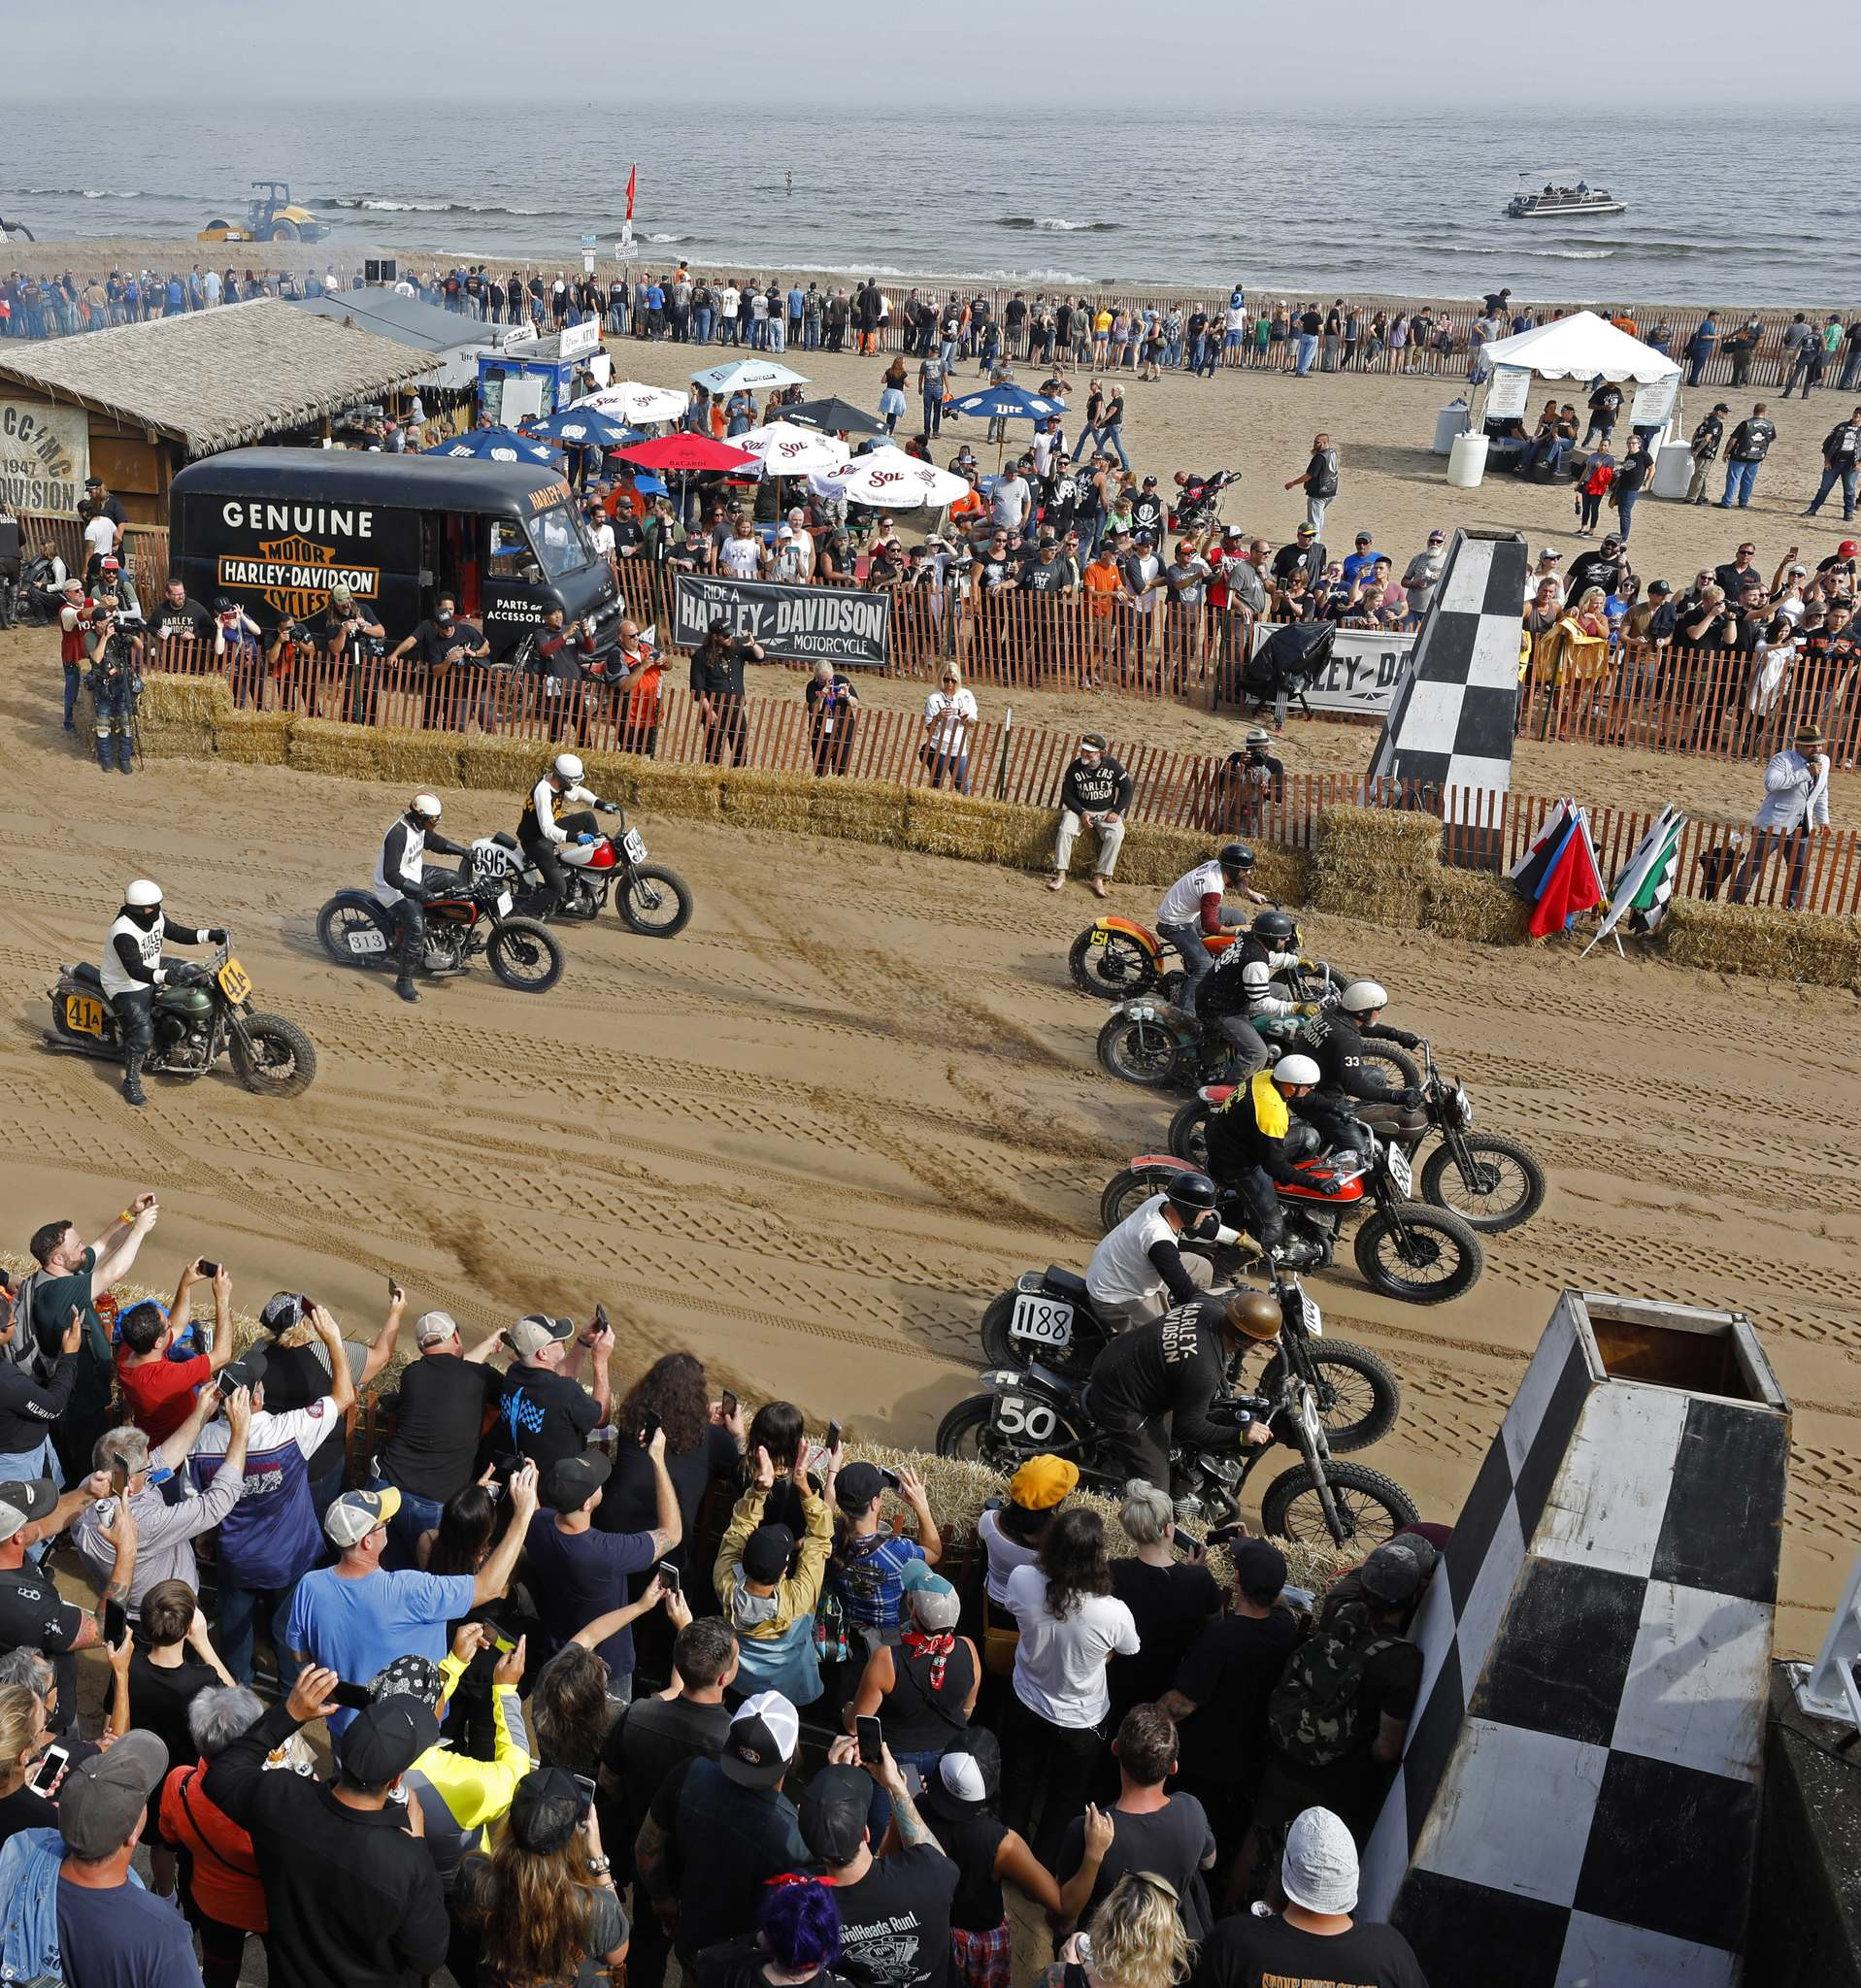 Jeffrey Phelps / The Associated PressWilly is kicking himself for missing the motorcycle races at Bradford Beach in Milwaukee. He'll have to wait until 2023 to see the races again.